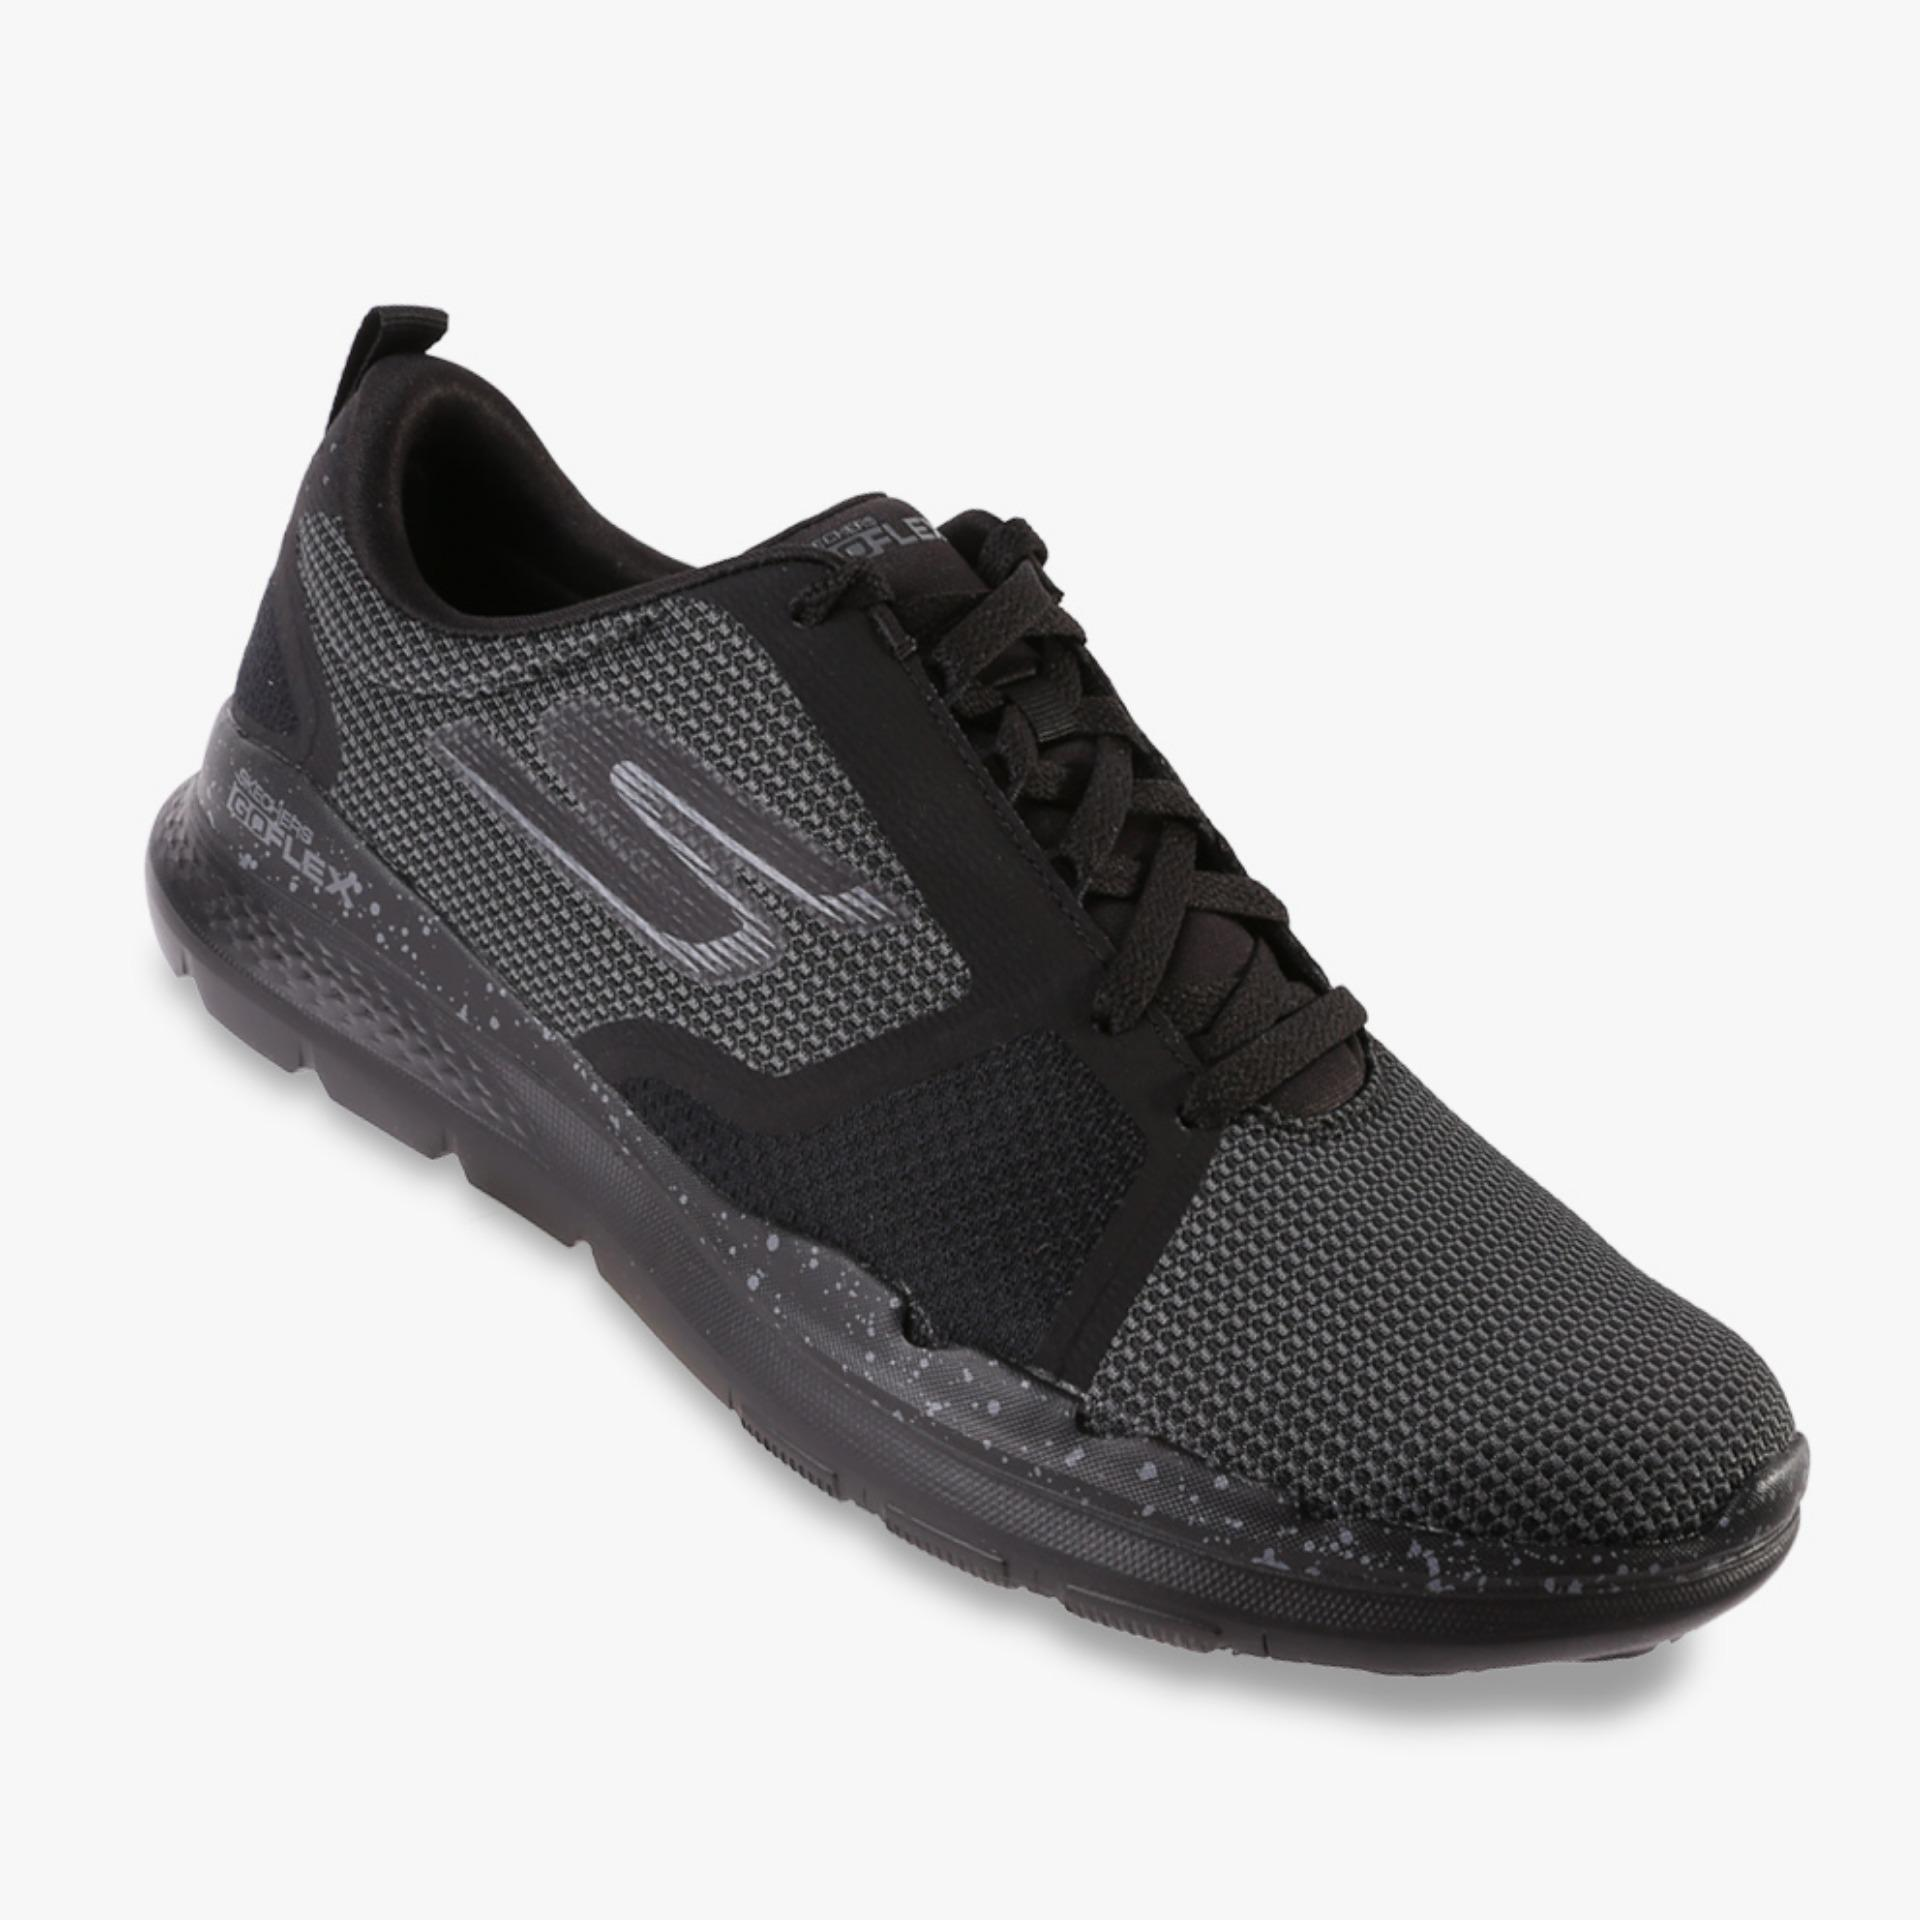 Berapa Harga Skechers Go Flex Train Men S Sneakers Hitam Skechers Di Indonesia